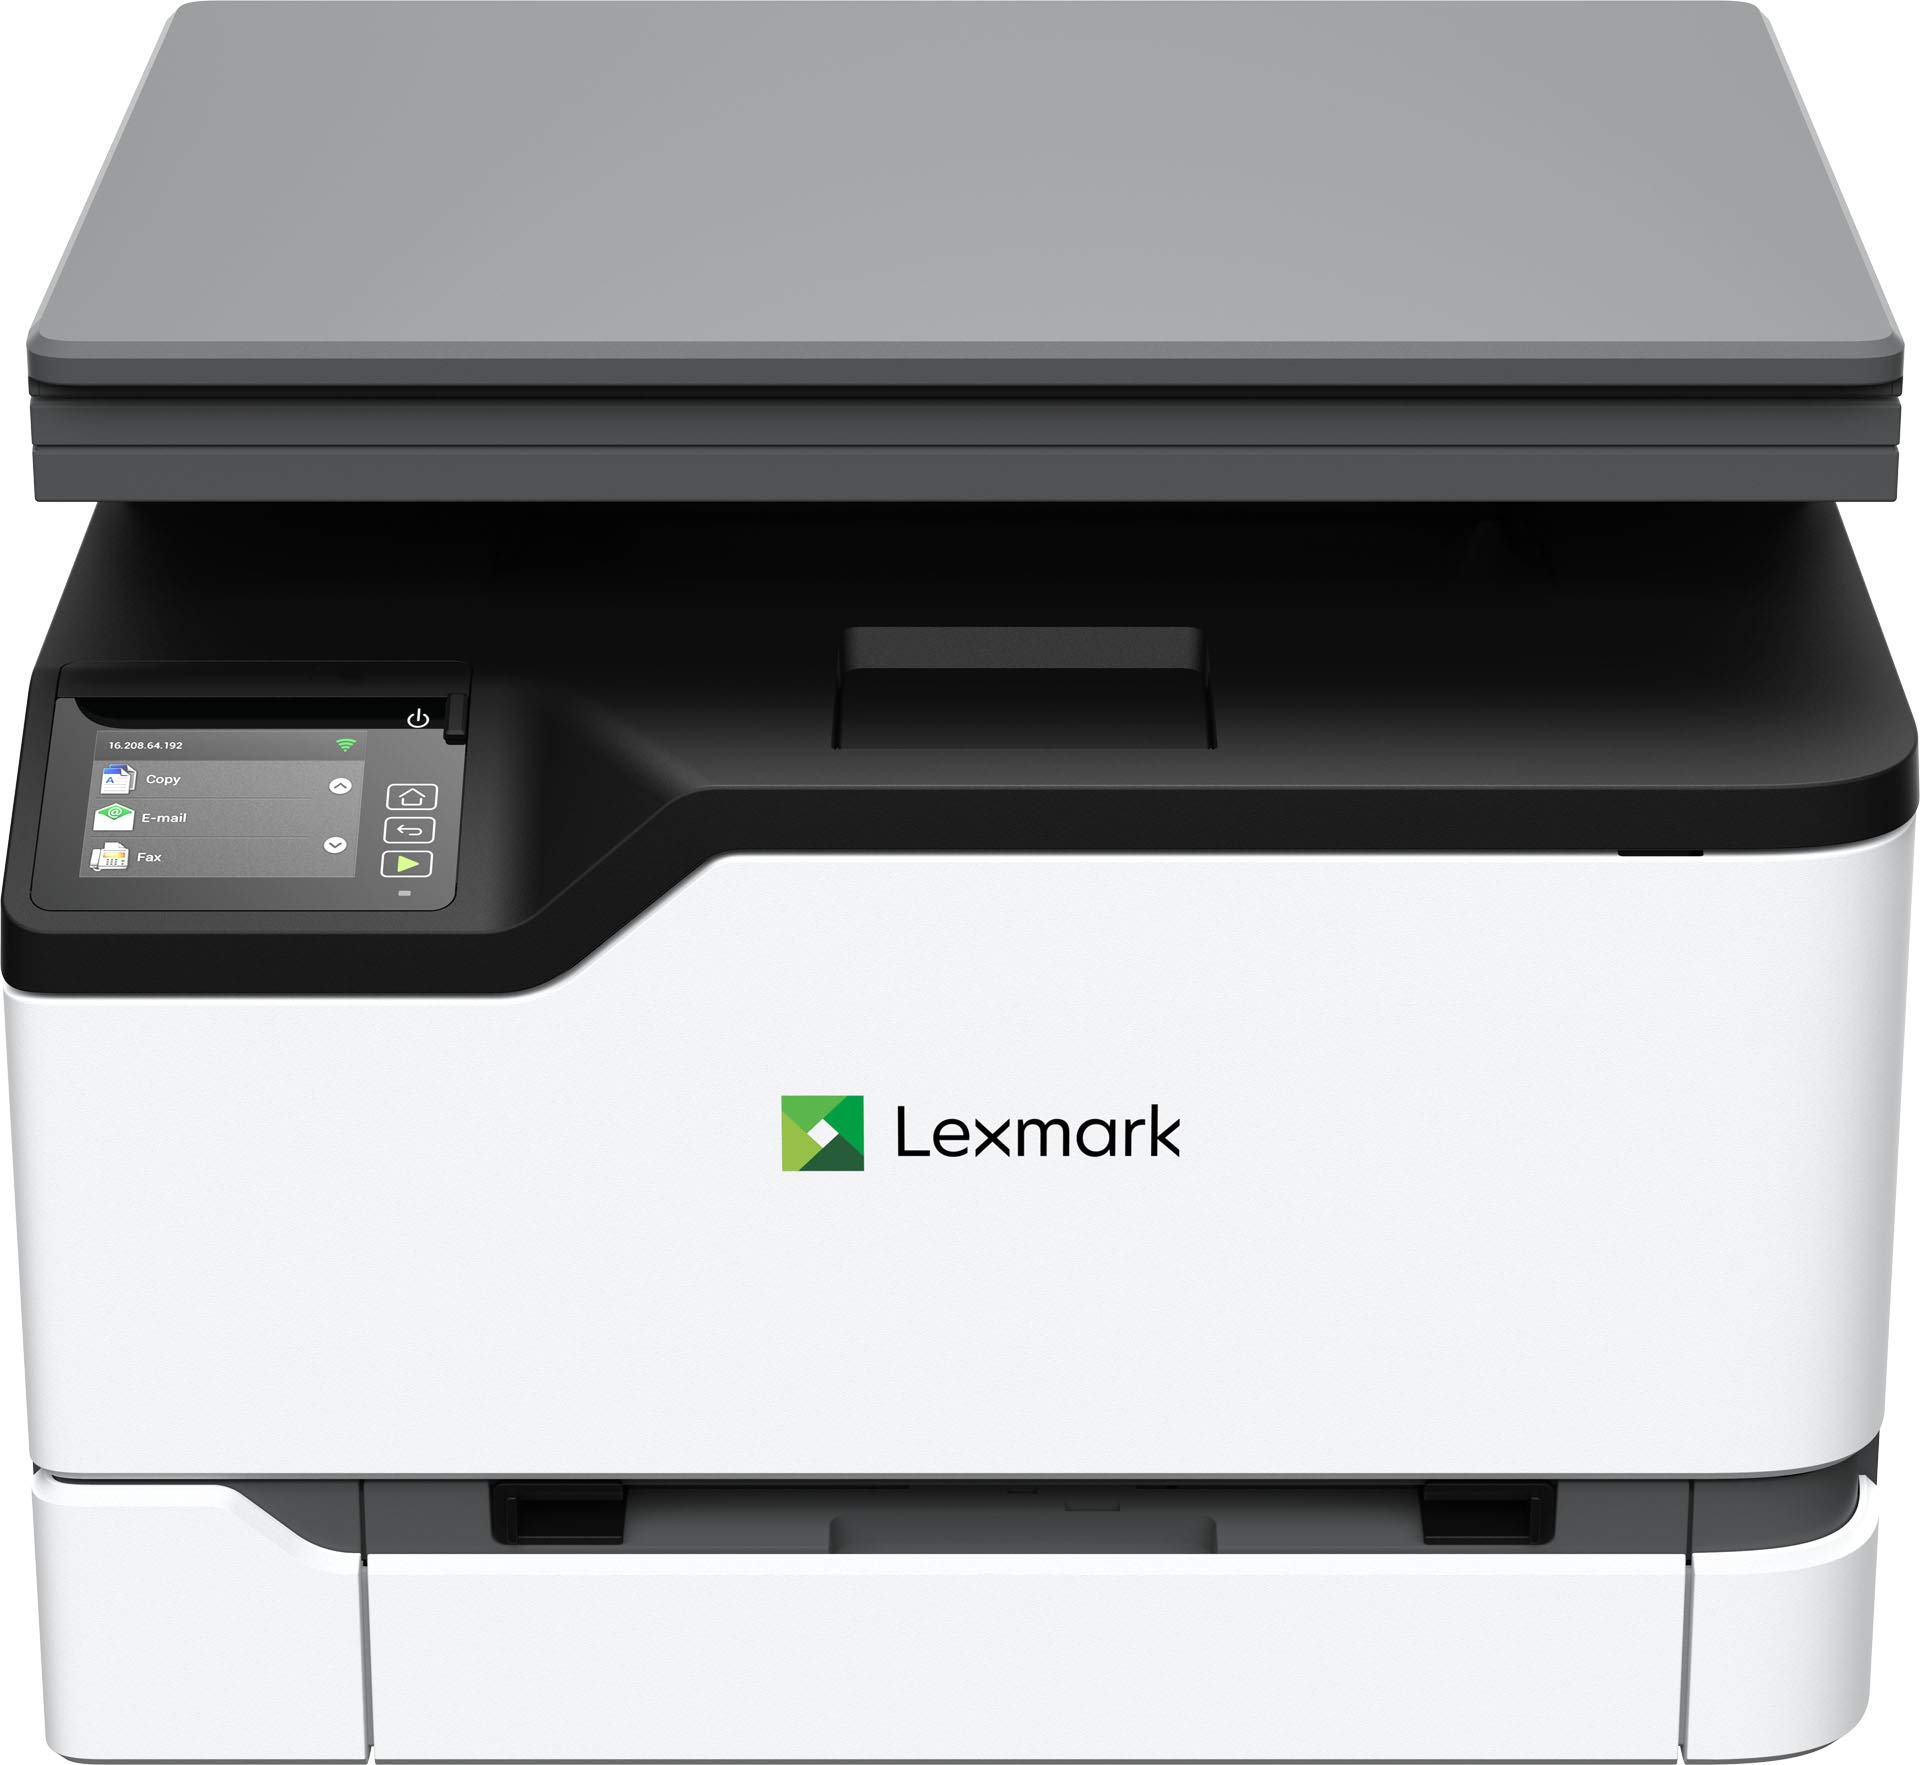 Lexmark MC3224dwe Color Multifunction Laser Printer with Print, Copy, Scan, and Wireless Capabilities, Two-Sided Printing with Full-Spectrum Security and Prints Up to 24 ppm (40N9040) by Lexmark